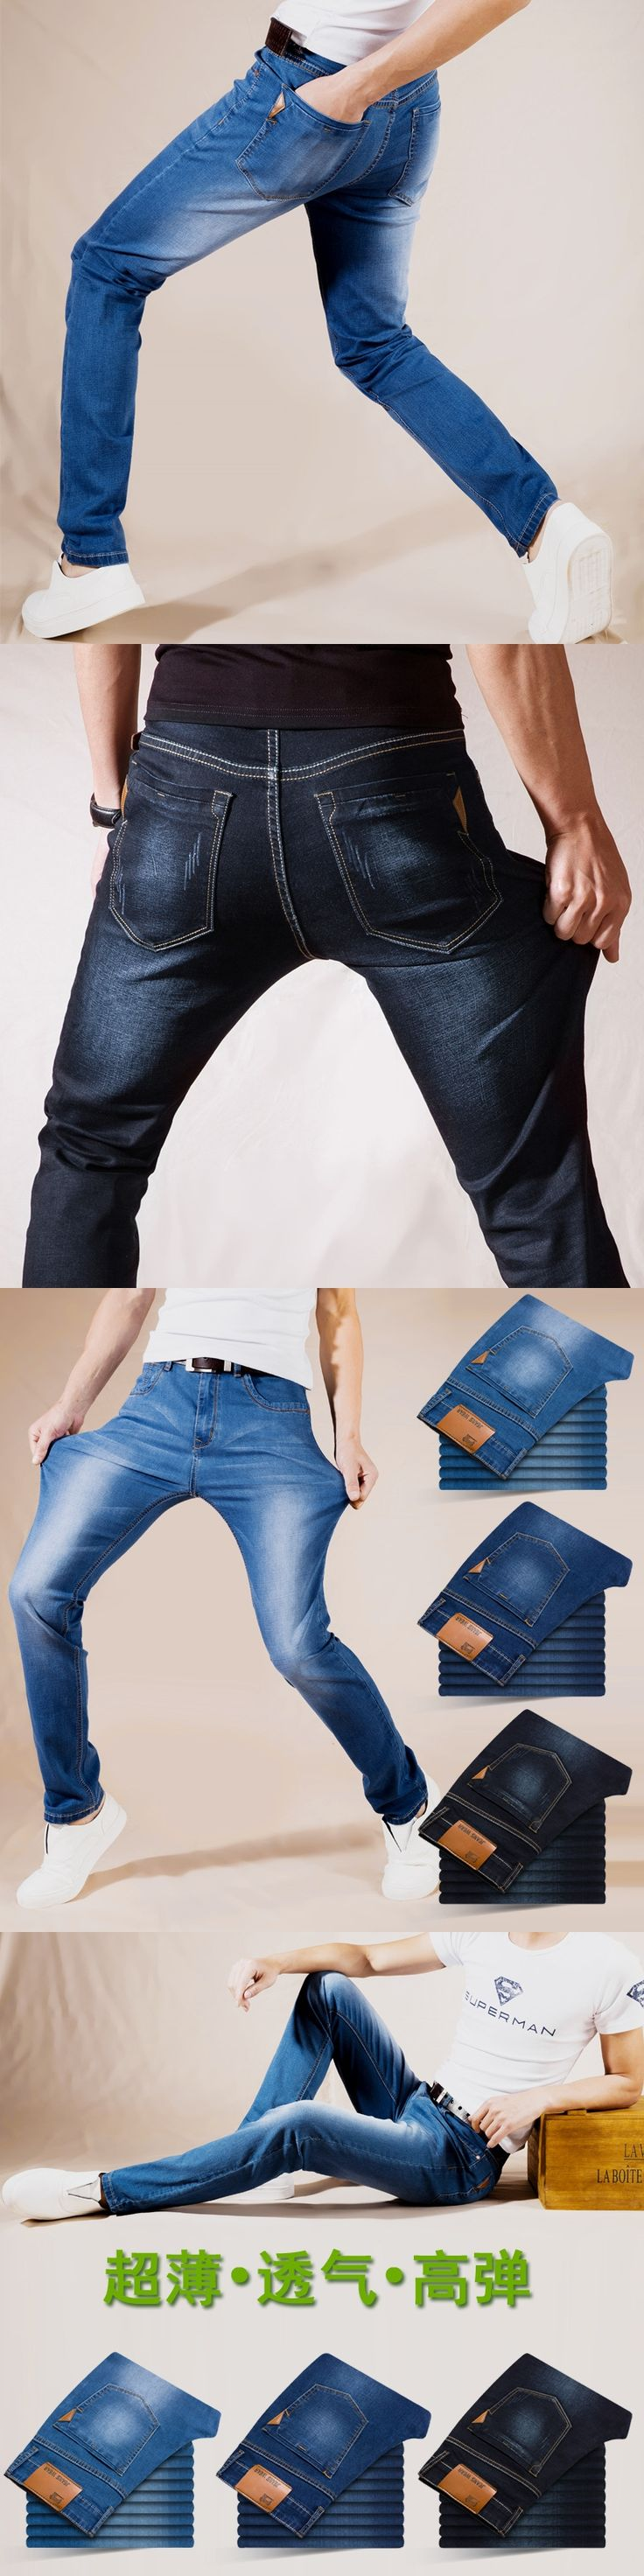 QMGOOD Summer New Stretch Cotton Breathable and Comfortable Blue Slim Jeans Fashion Casual Men's Lightweight Trousers Wholesale